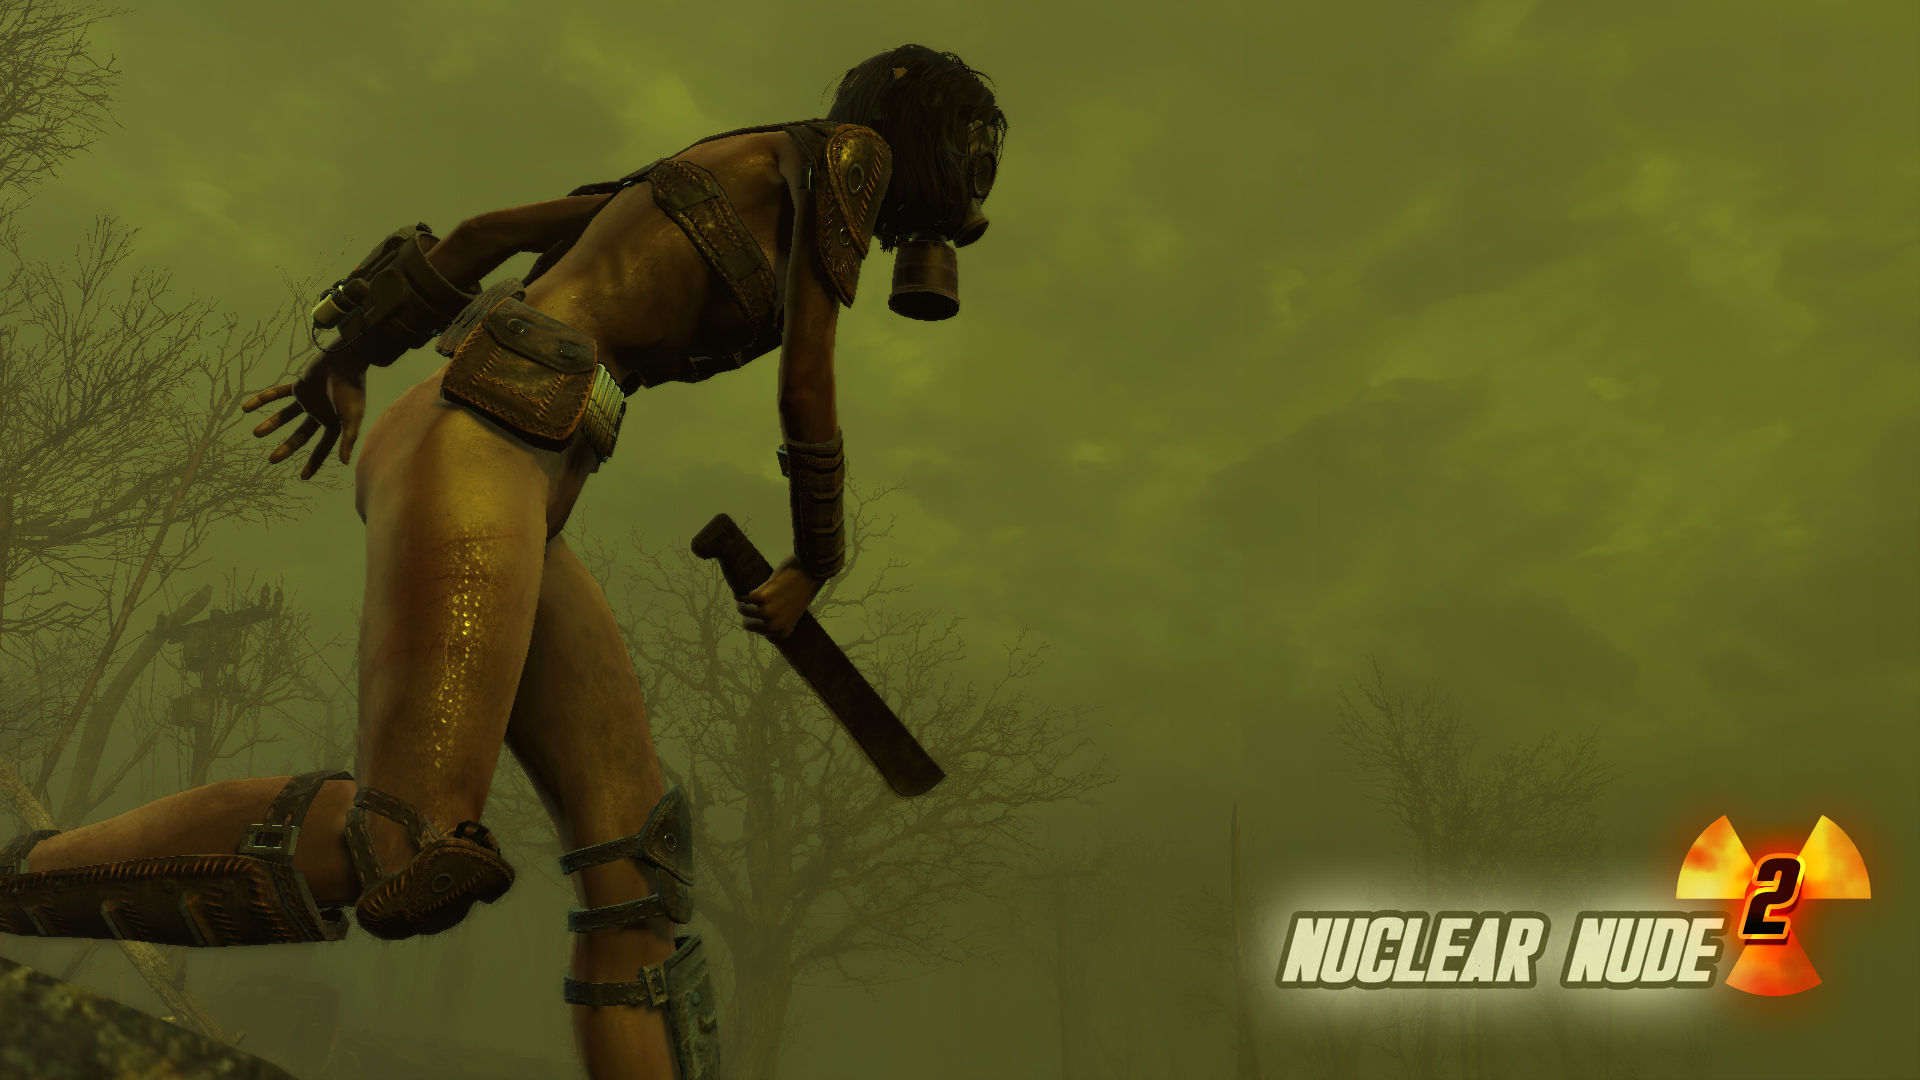 Fallout3 nude mod fucking photo